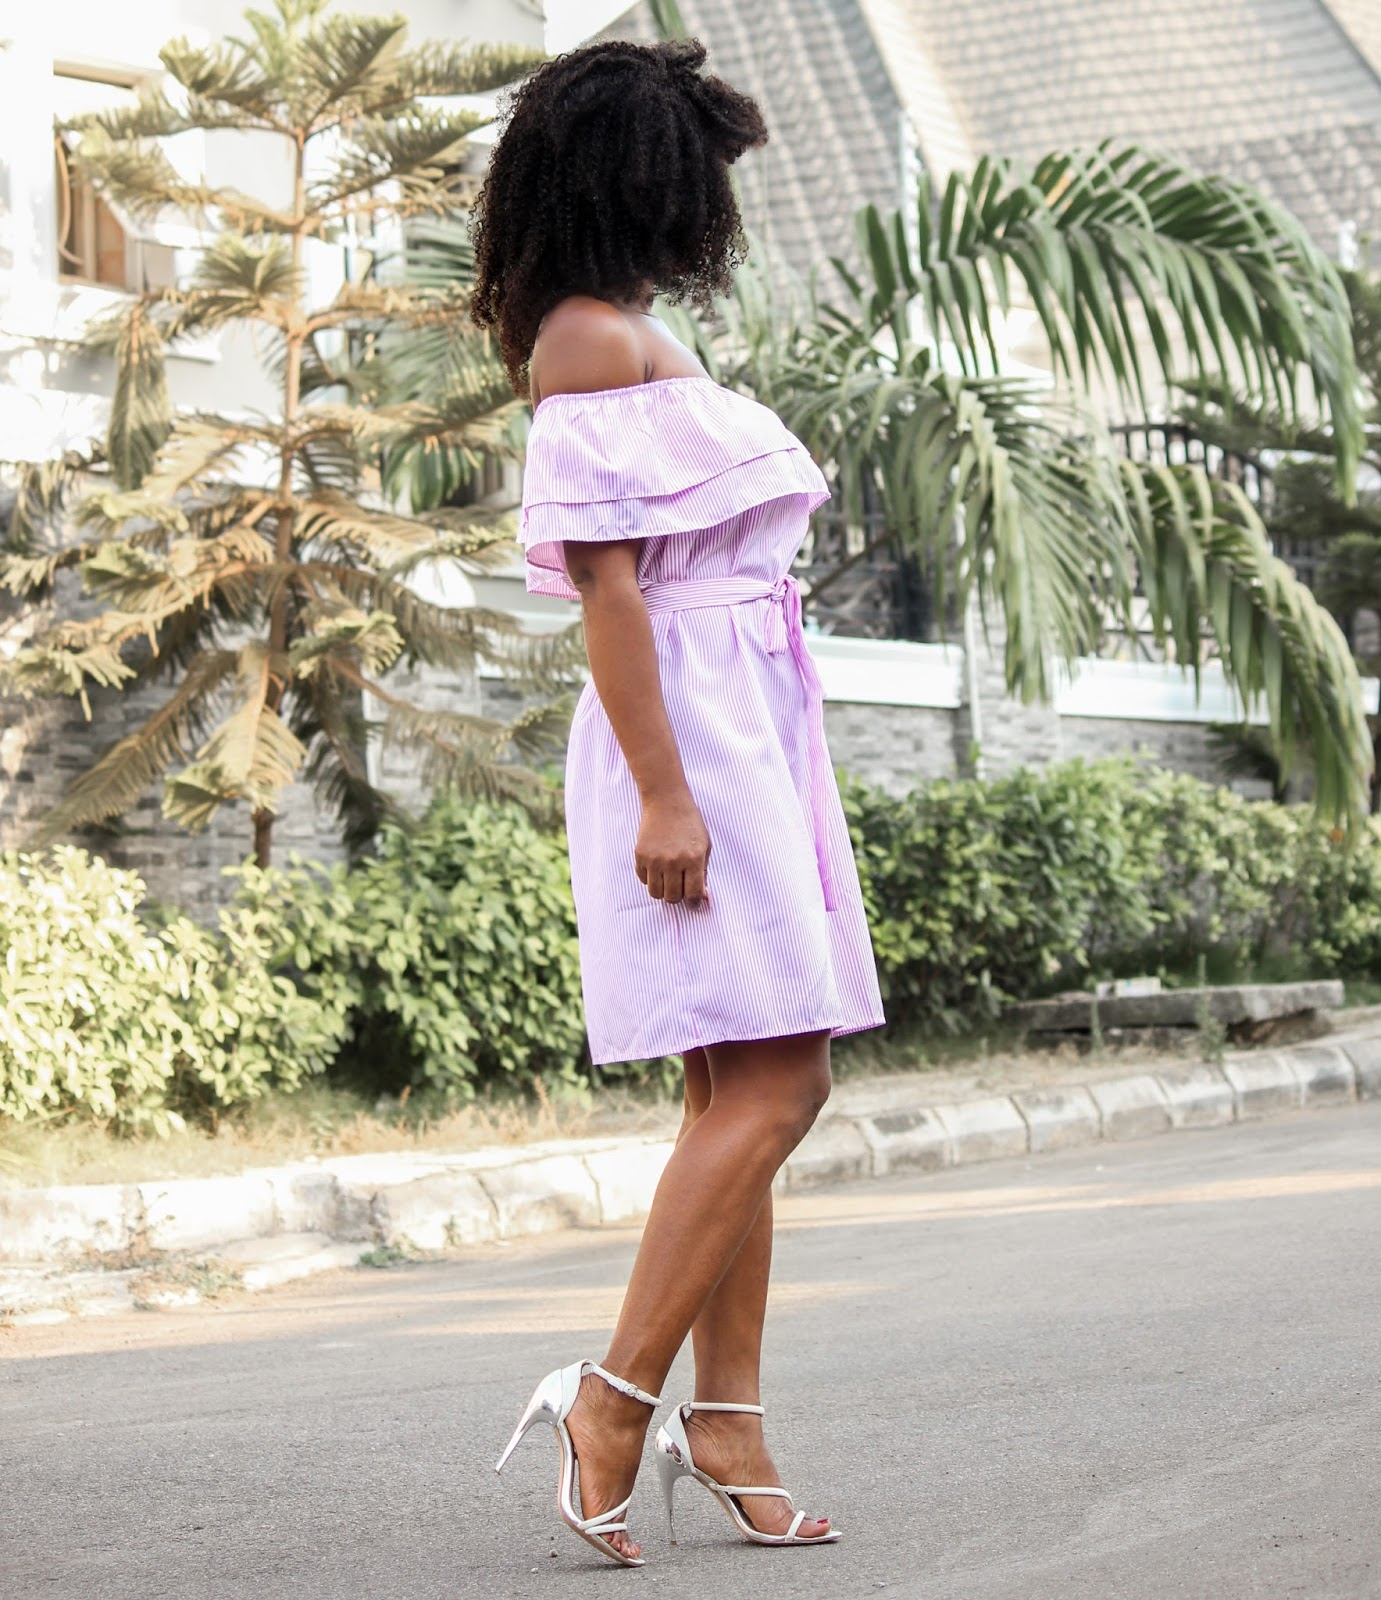 OFF SHOULDER RUFFLE DRESS - Pink Off-Shouder Ruffles Stripe Dress from Jumia with Zara white sandals